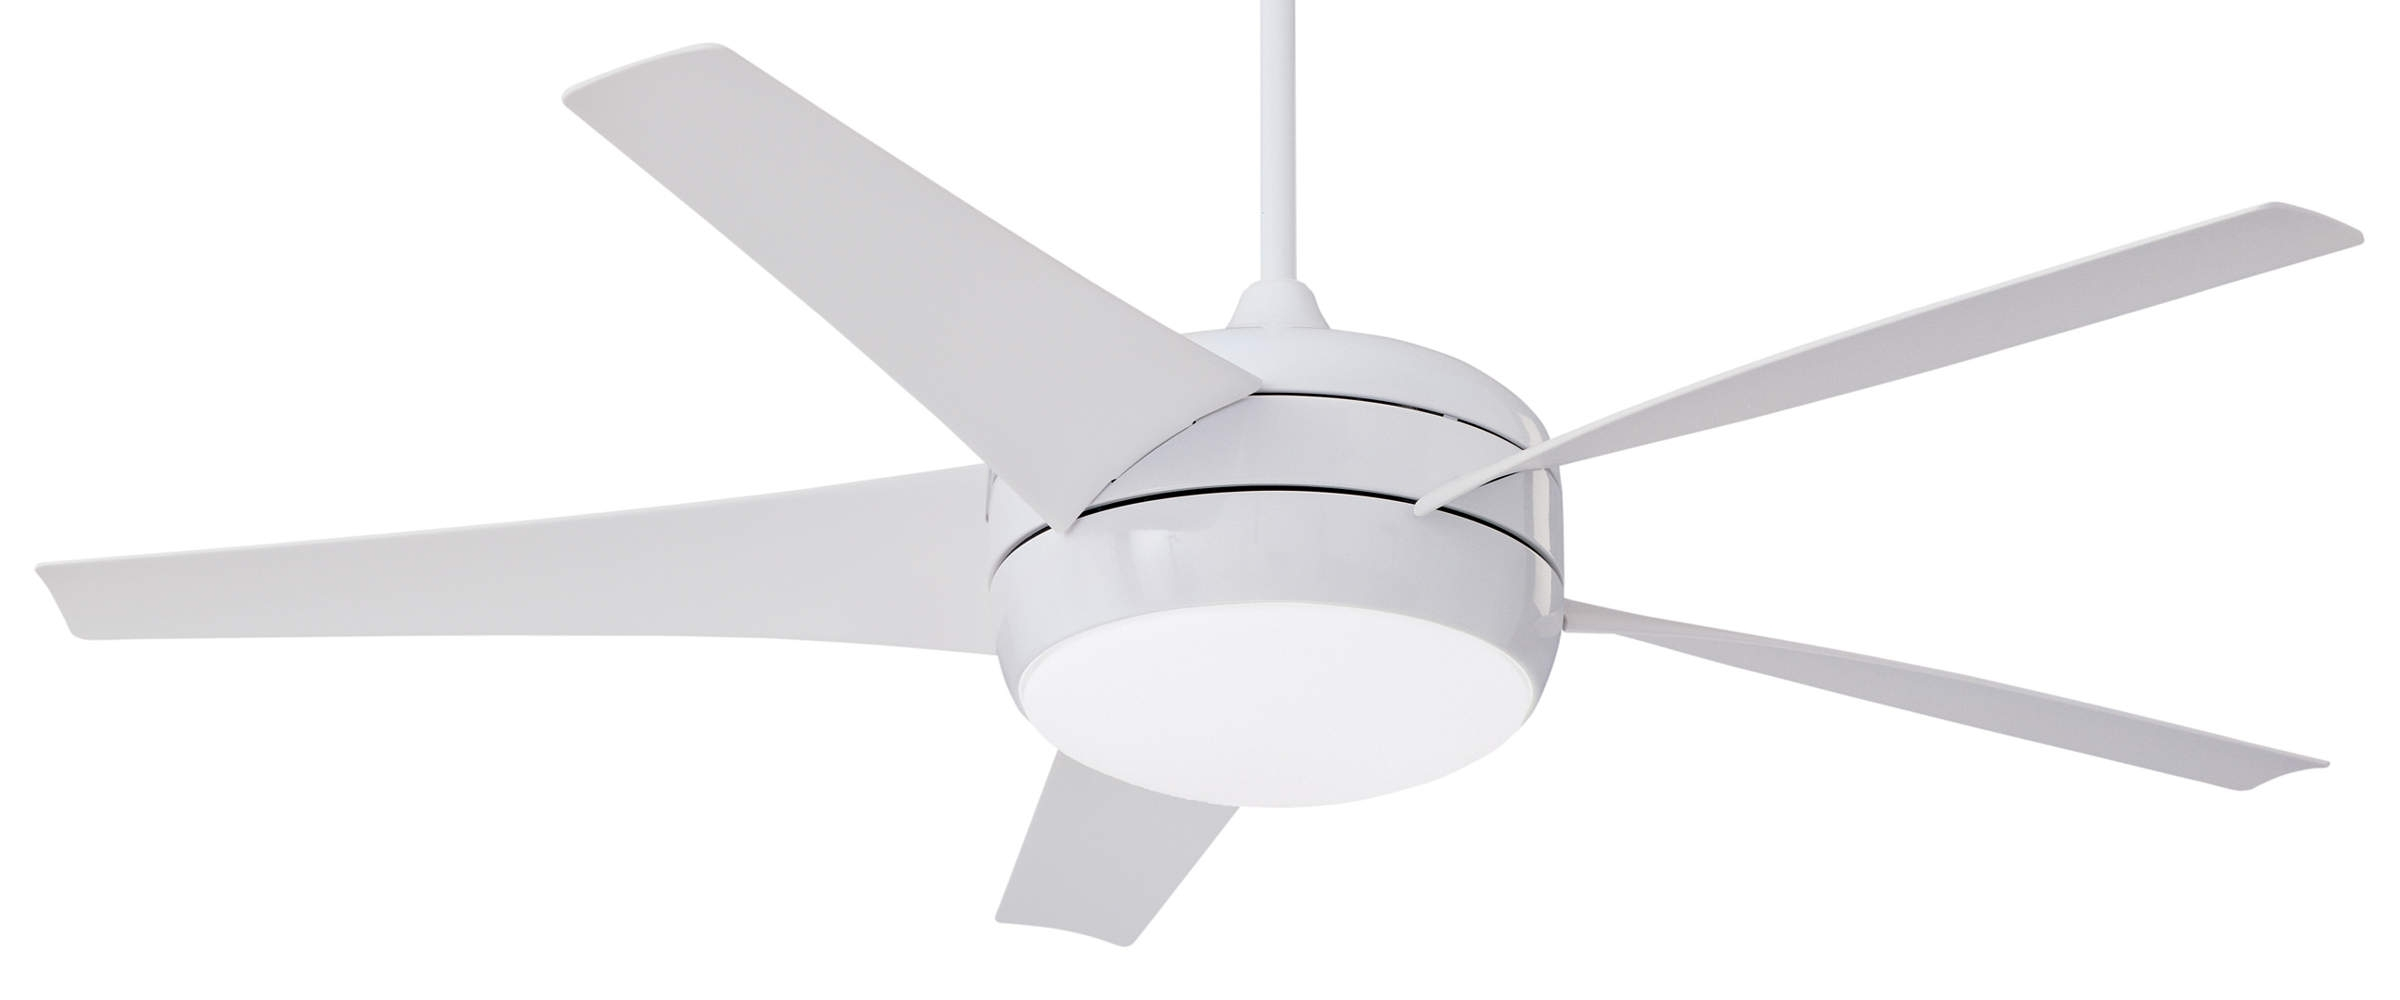 Preferred Emerson Midway Eco Dc Motor Ceiling Fan Cfww In Gloss White With With Regard To Emerson Outdoor Ceiling Fans With Lights (View 18 of 20)